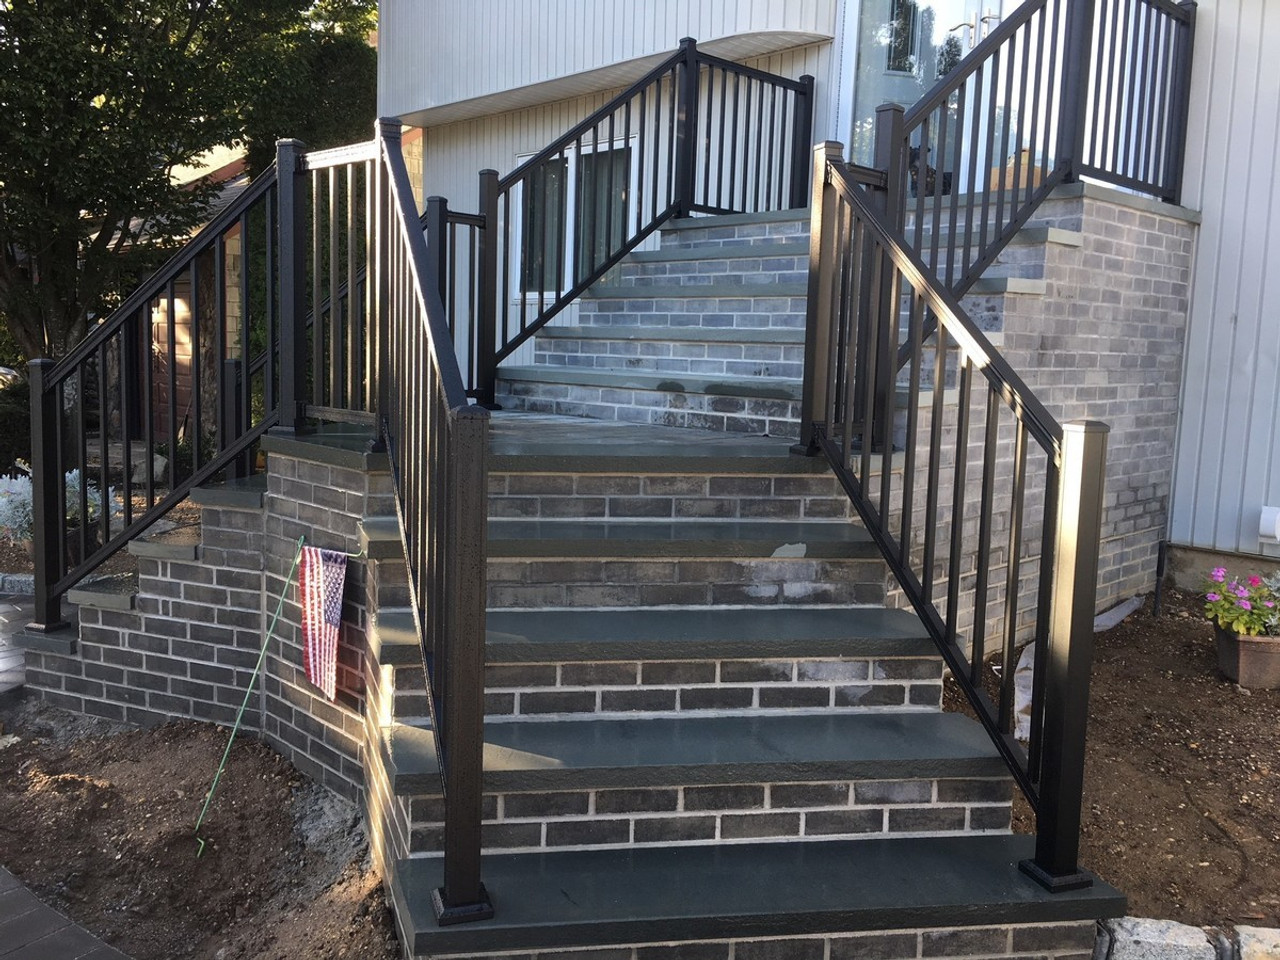 Key-Link American Series Aluminum Railing with Square Balusters